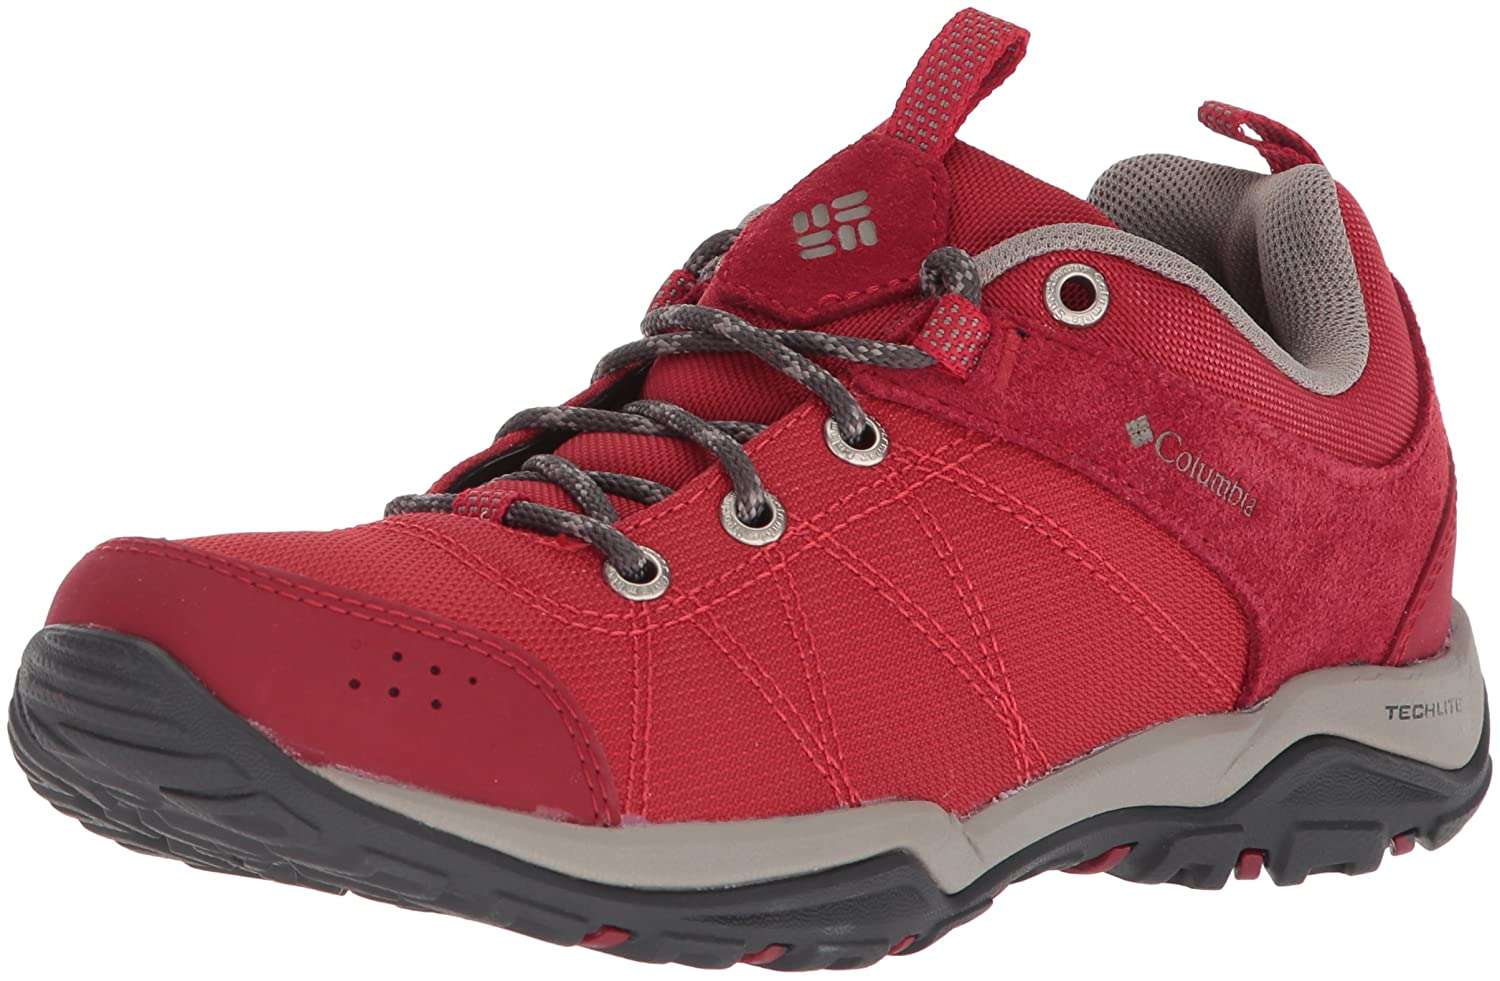 Columbia Femme Chaussures Casual, FIRE VENTURE TEXTILE 1718771